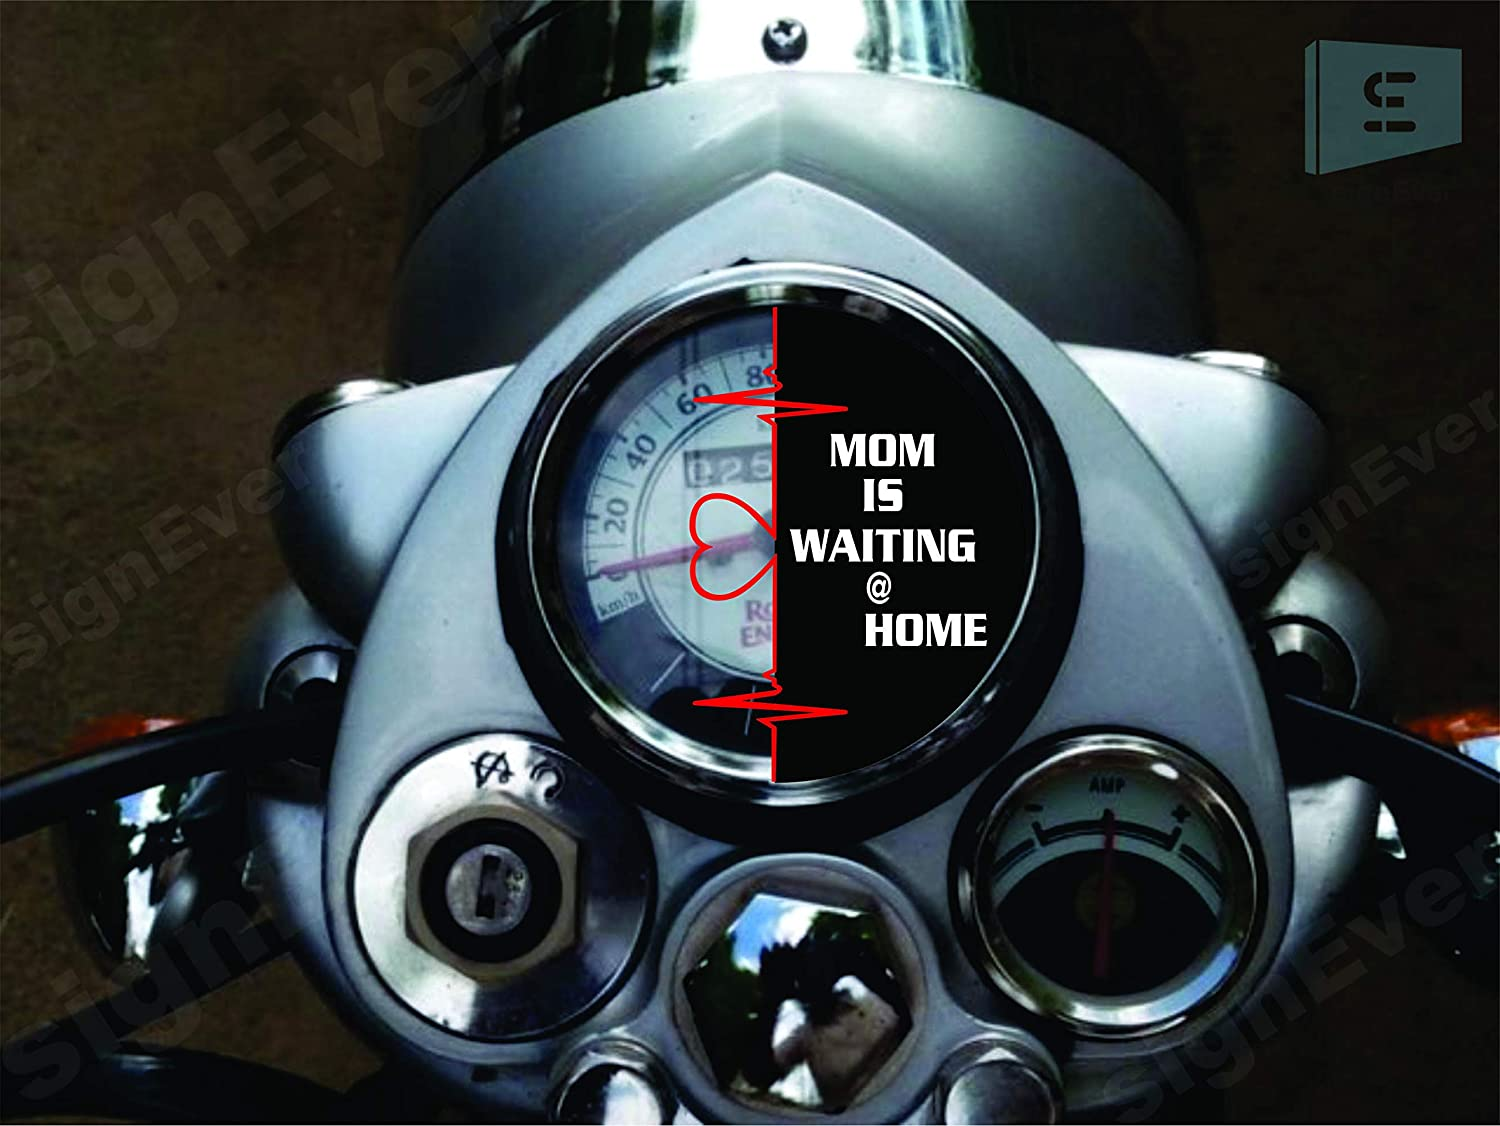 Signever mom is waiting at home standard bike sticker for royal enfield classic 350 500 for meeter tank decals l x h 5 00 x 7 00 cm black white